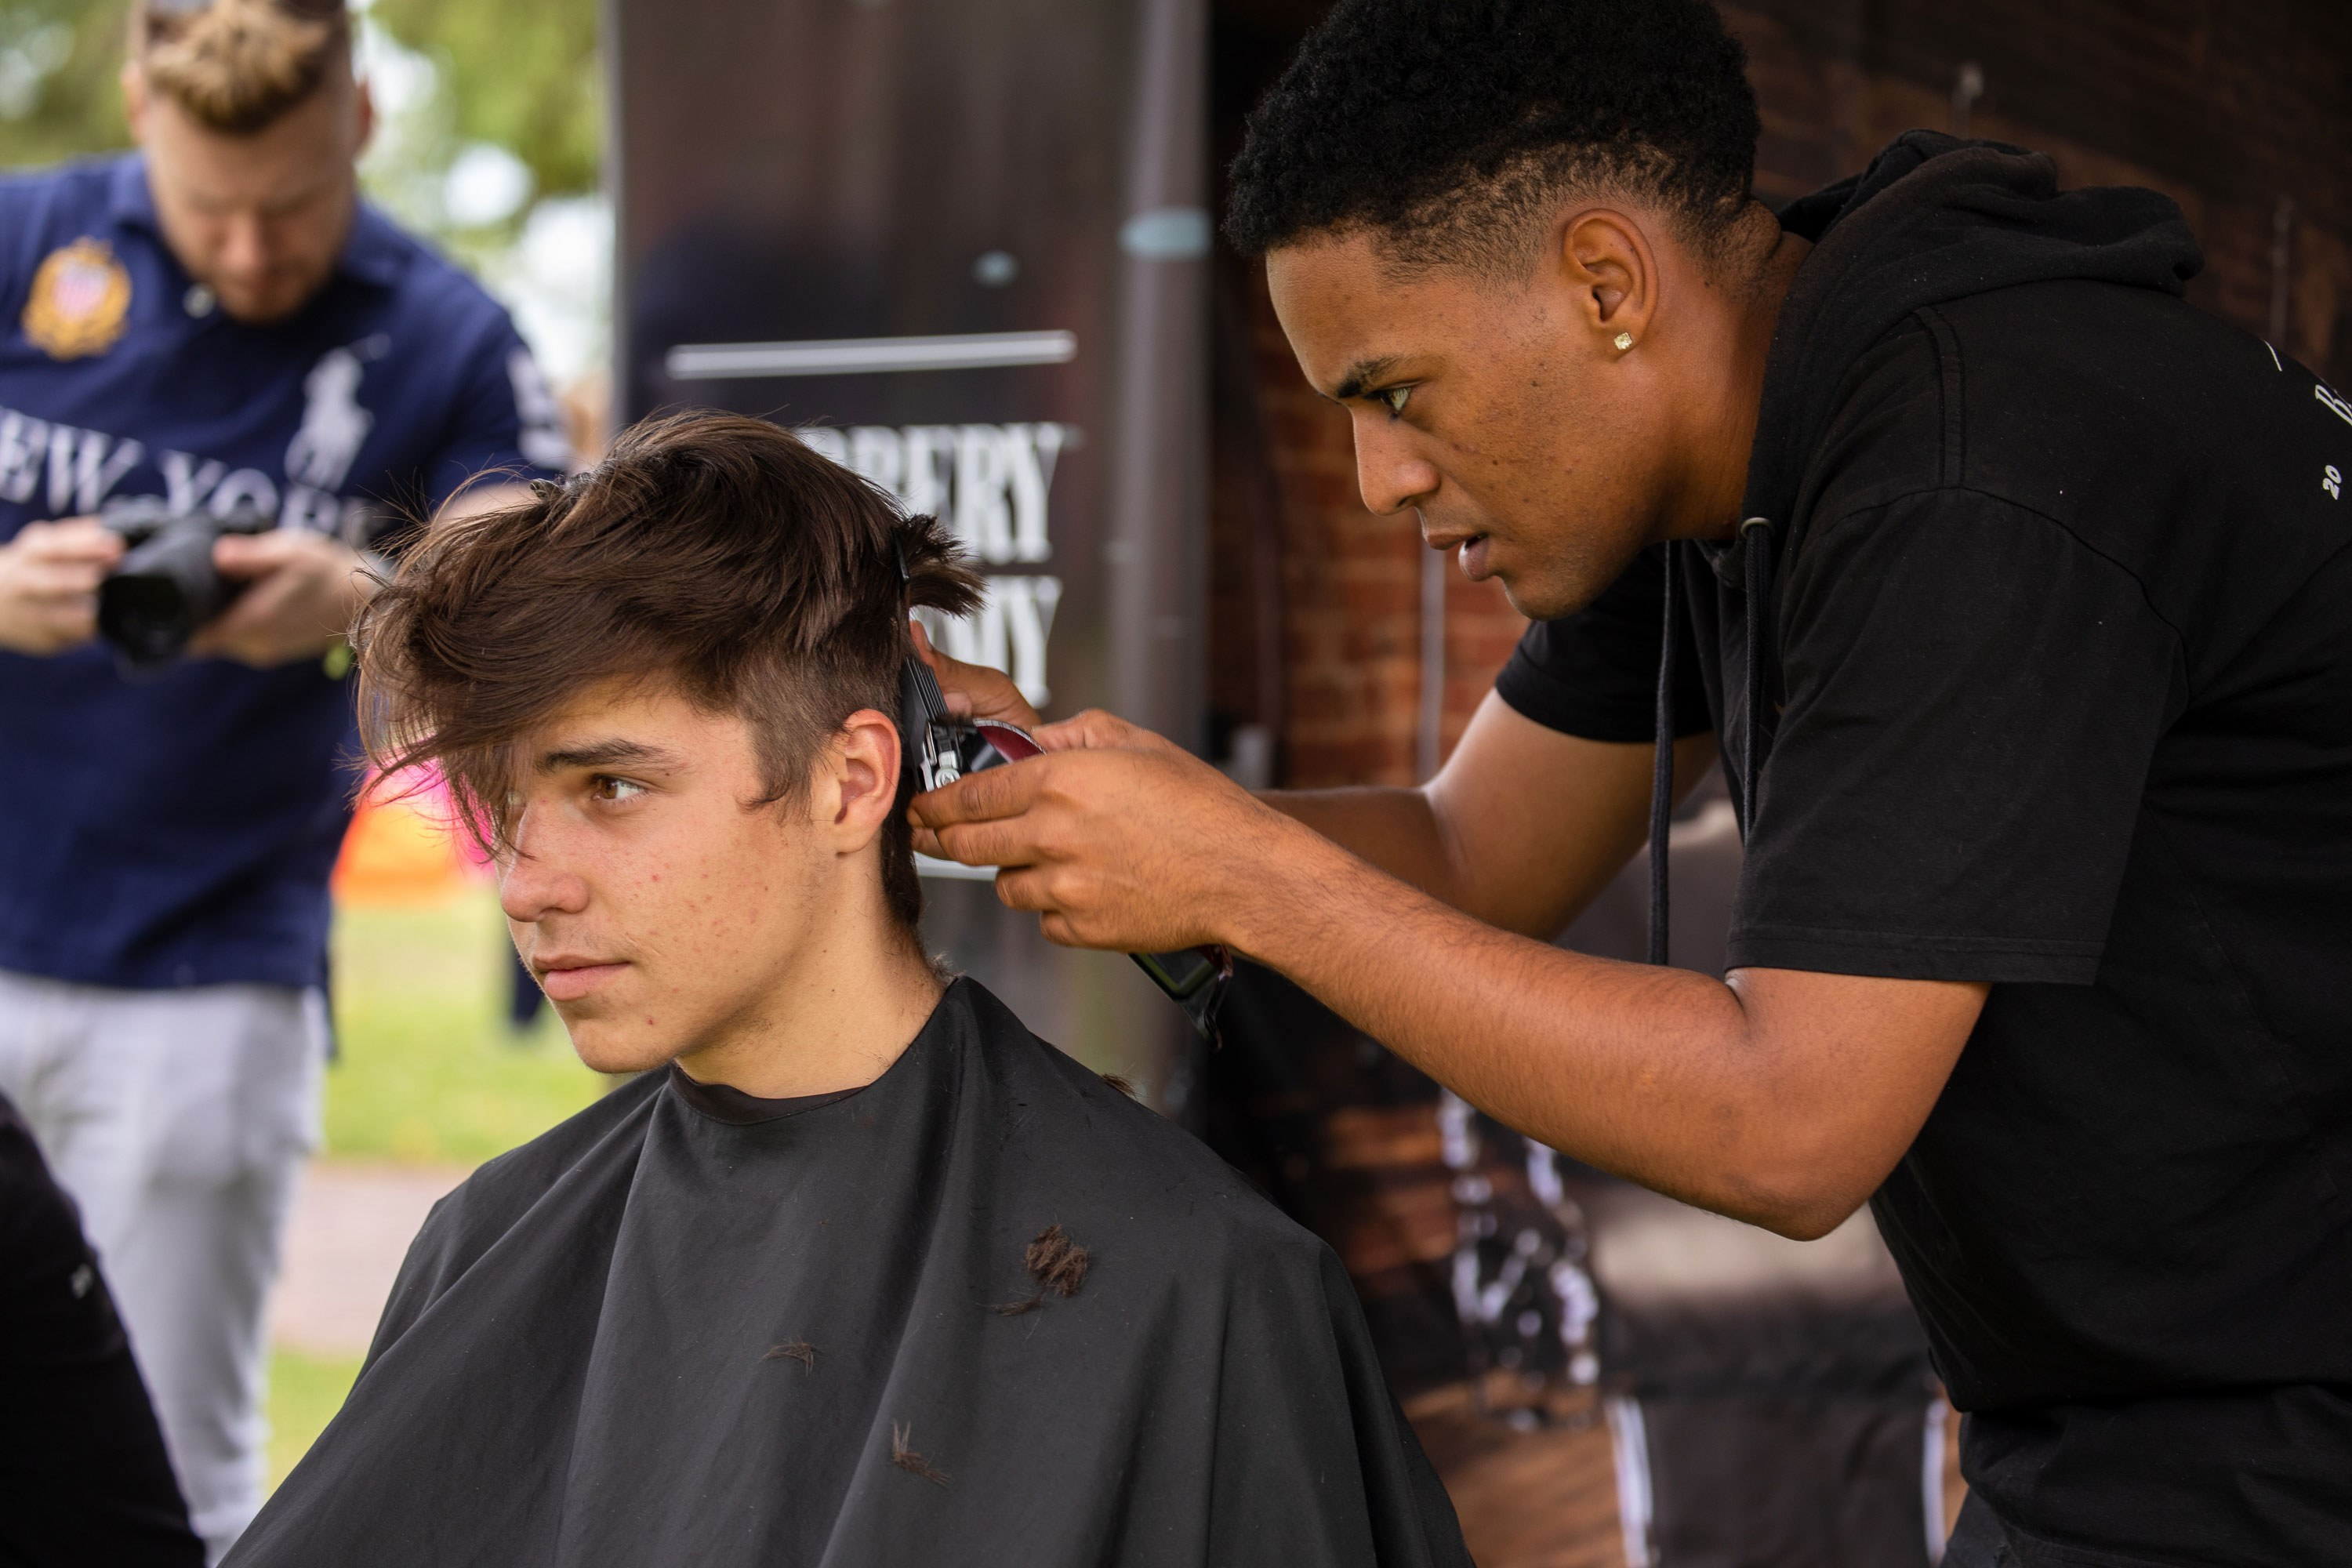 Barber academy popup at parkfest